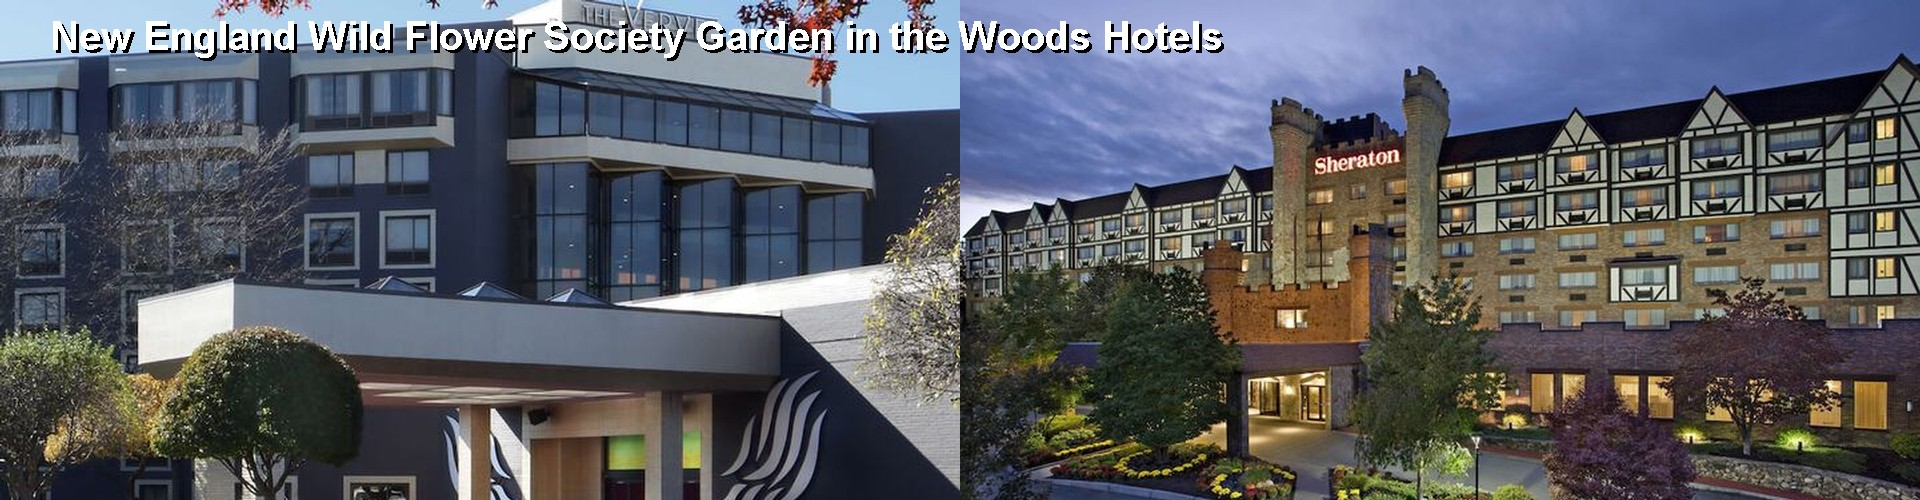 5 Best Hotels near New England Wild Flower Society Garden in the Woods